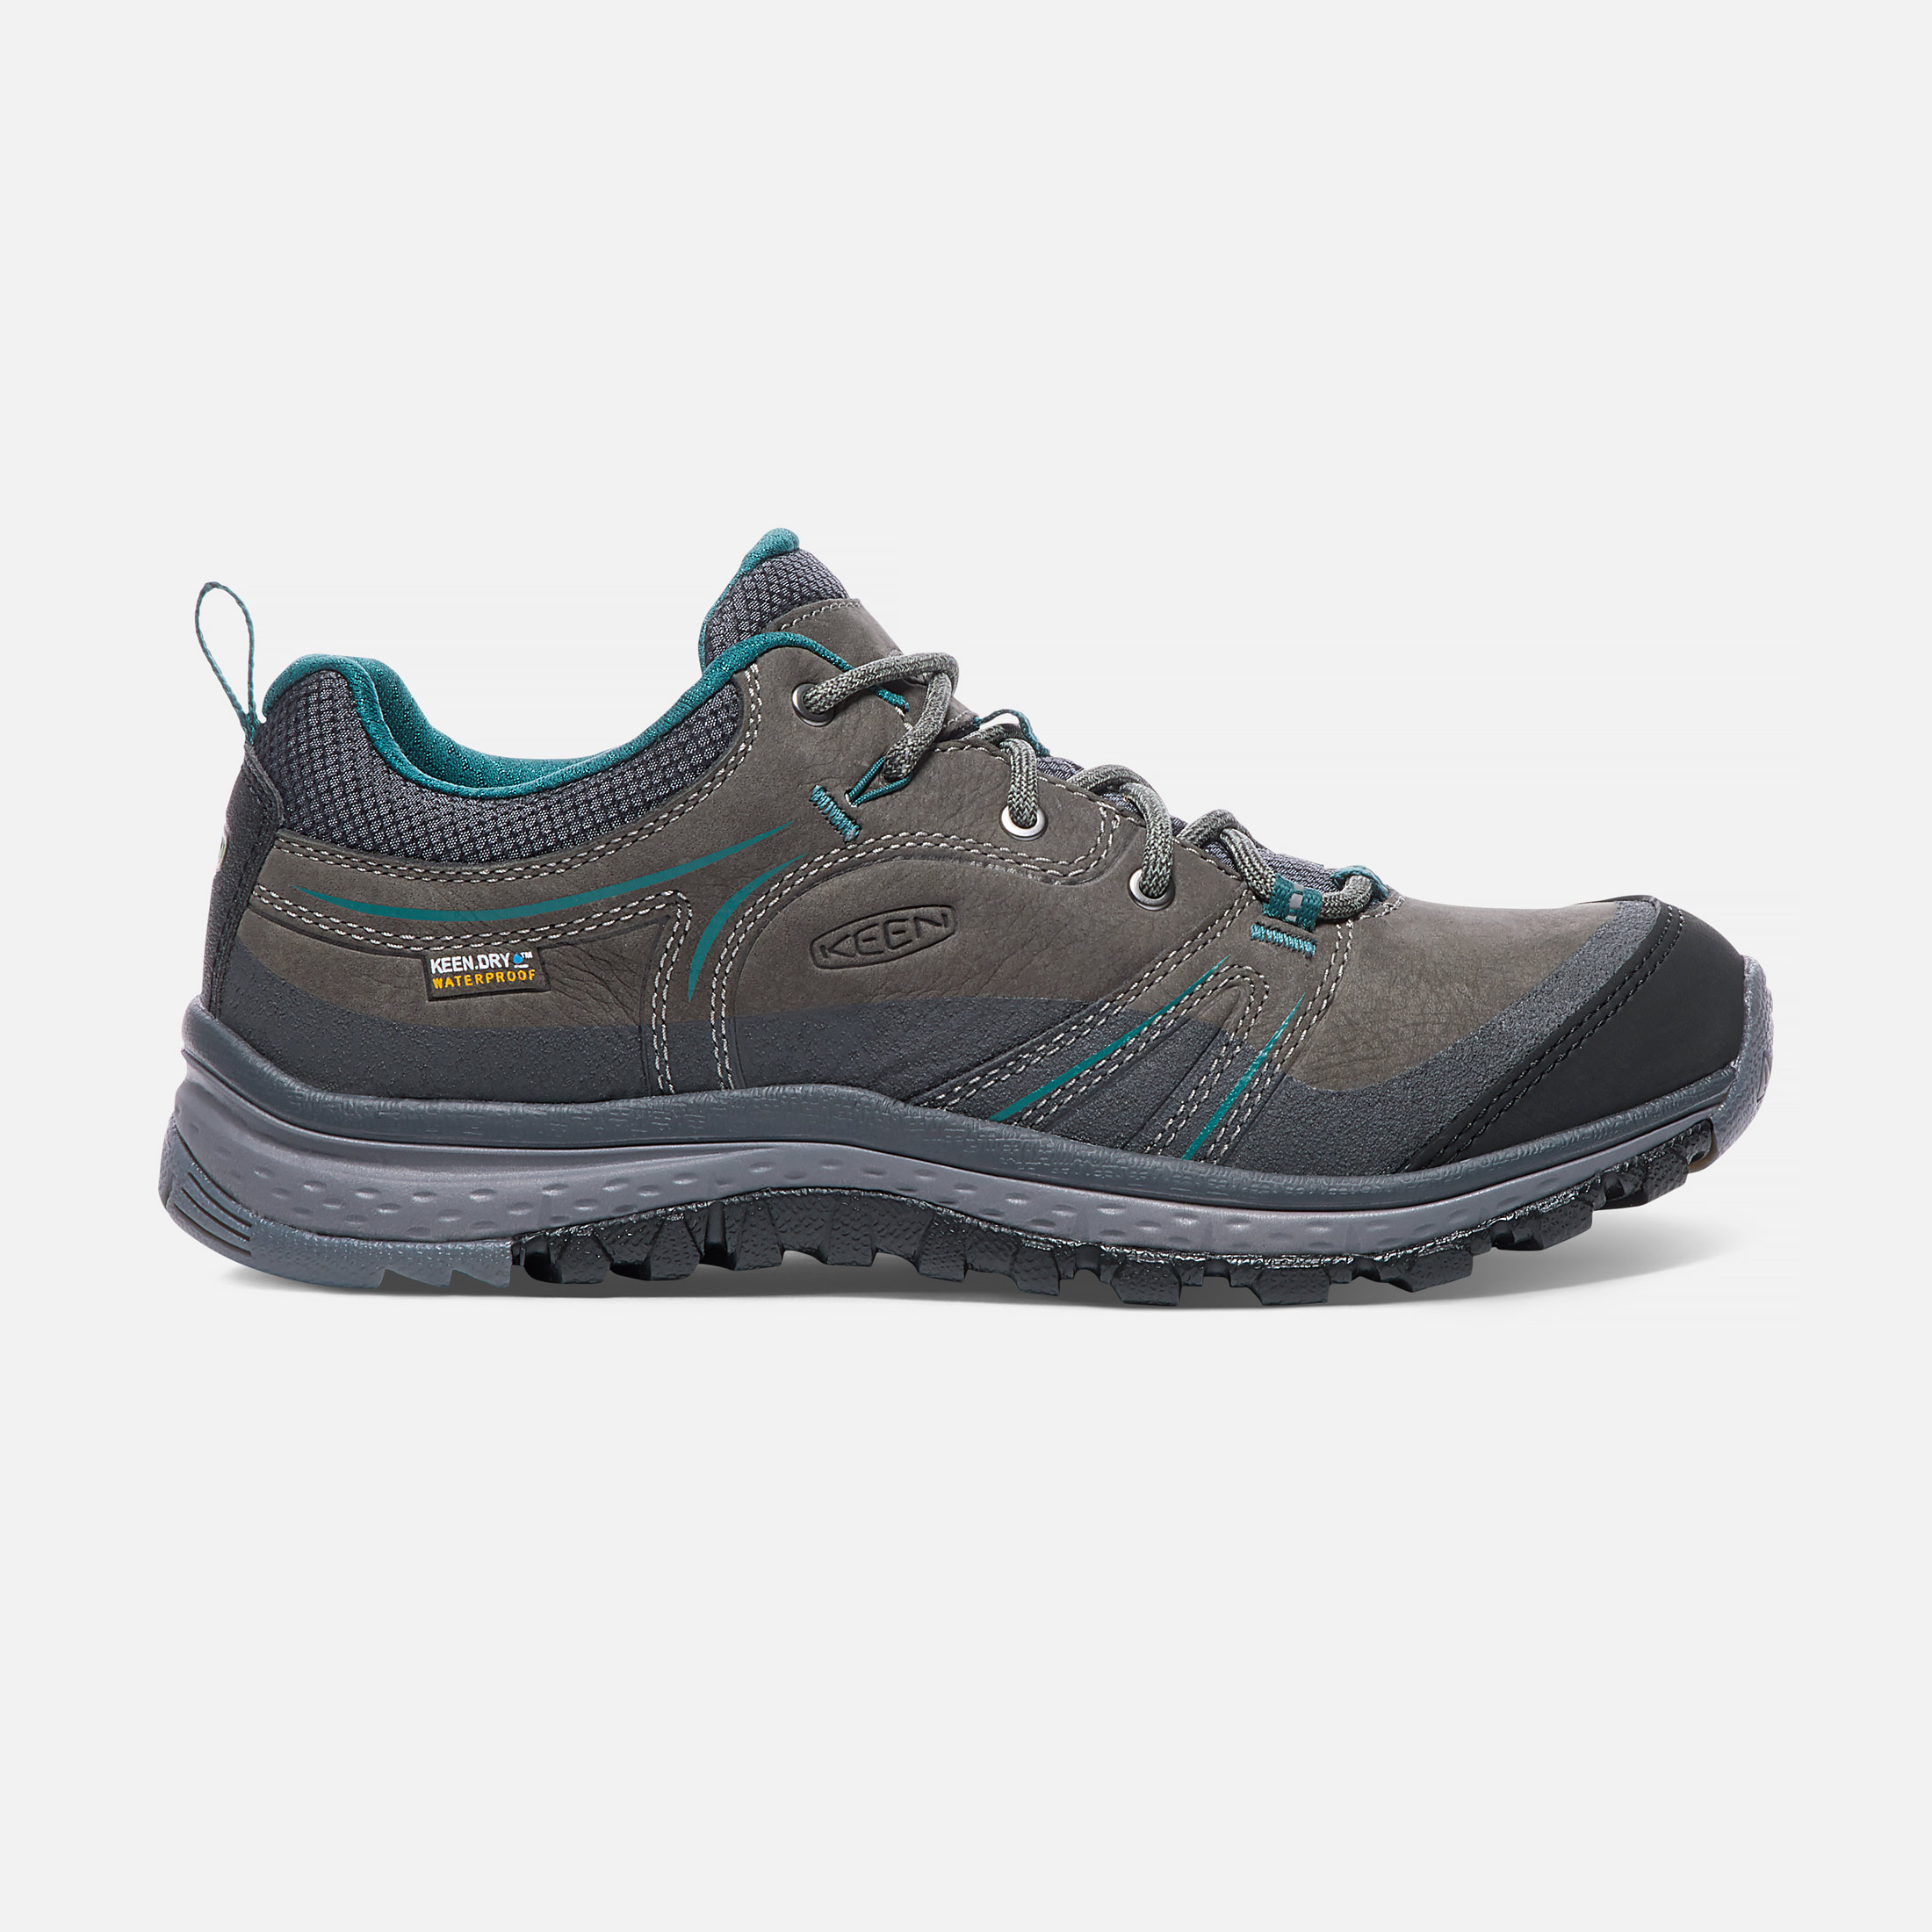 c8e1ad4cd81d5f TERRADORA LEATHER WATERPROOF MID WANDERSCHUH FÜR DAMEN